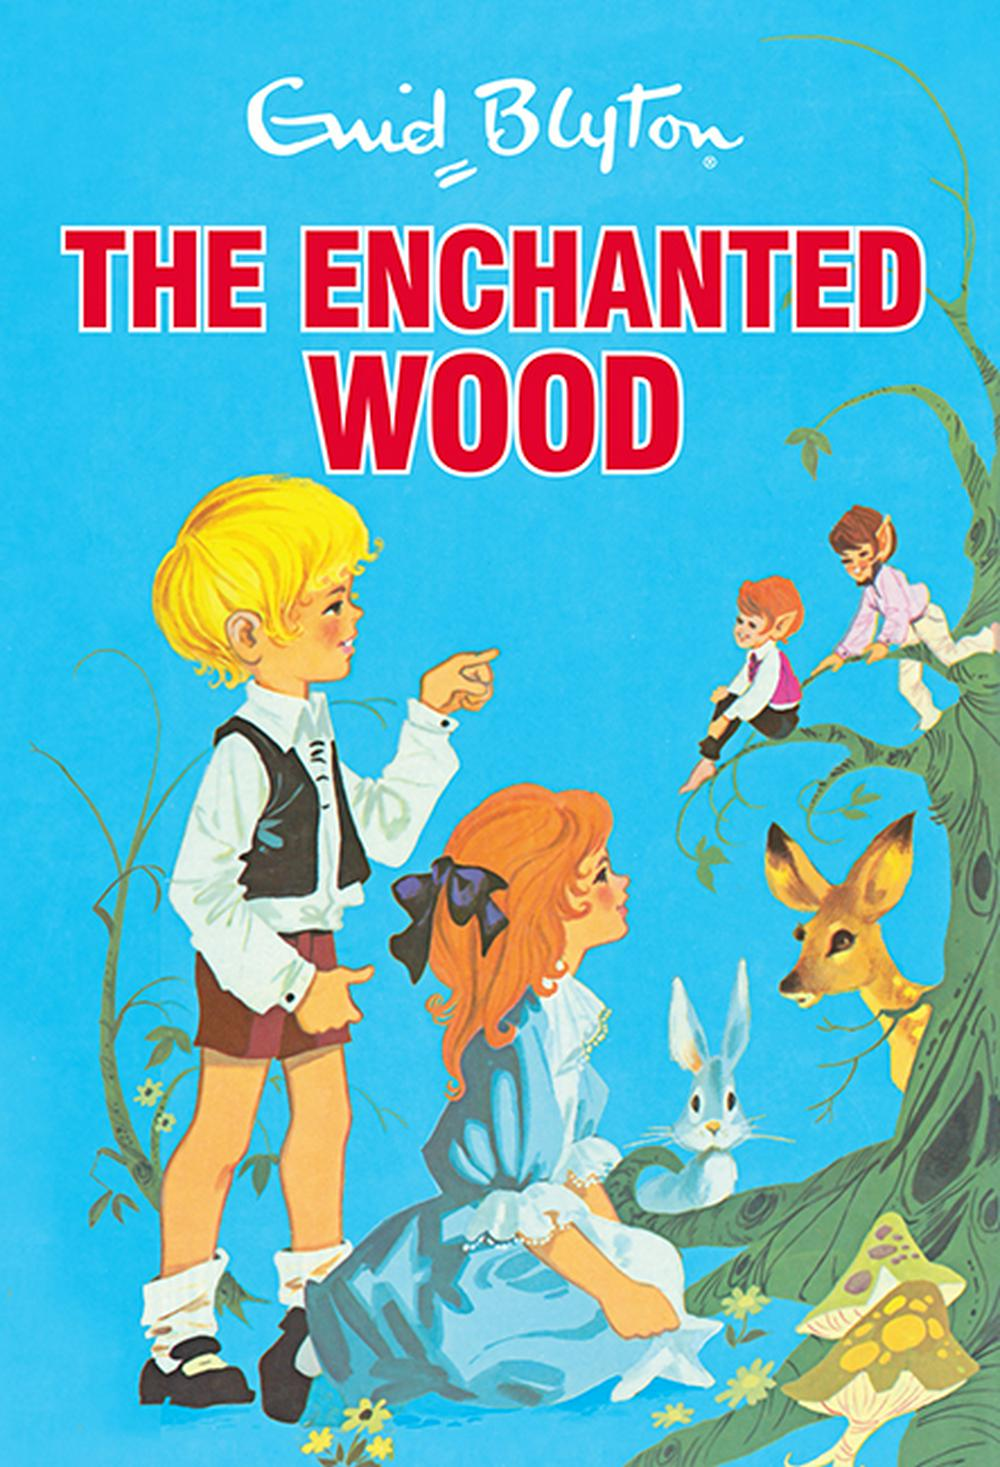 The Enchanted Wood Retro